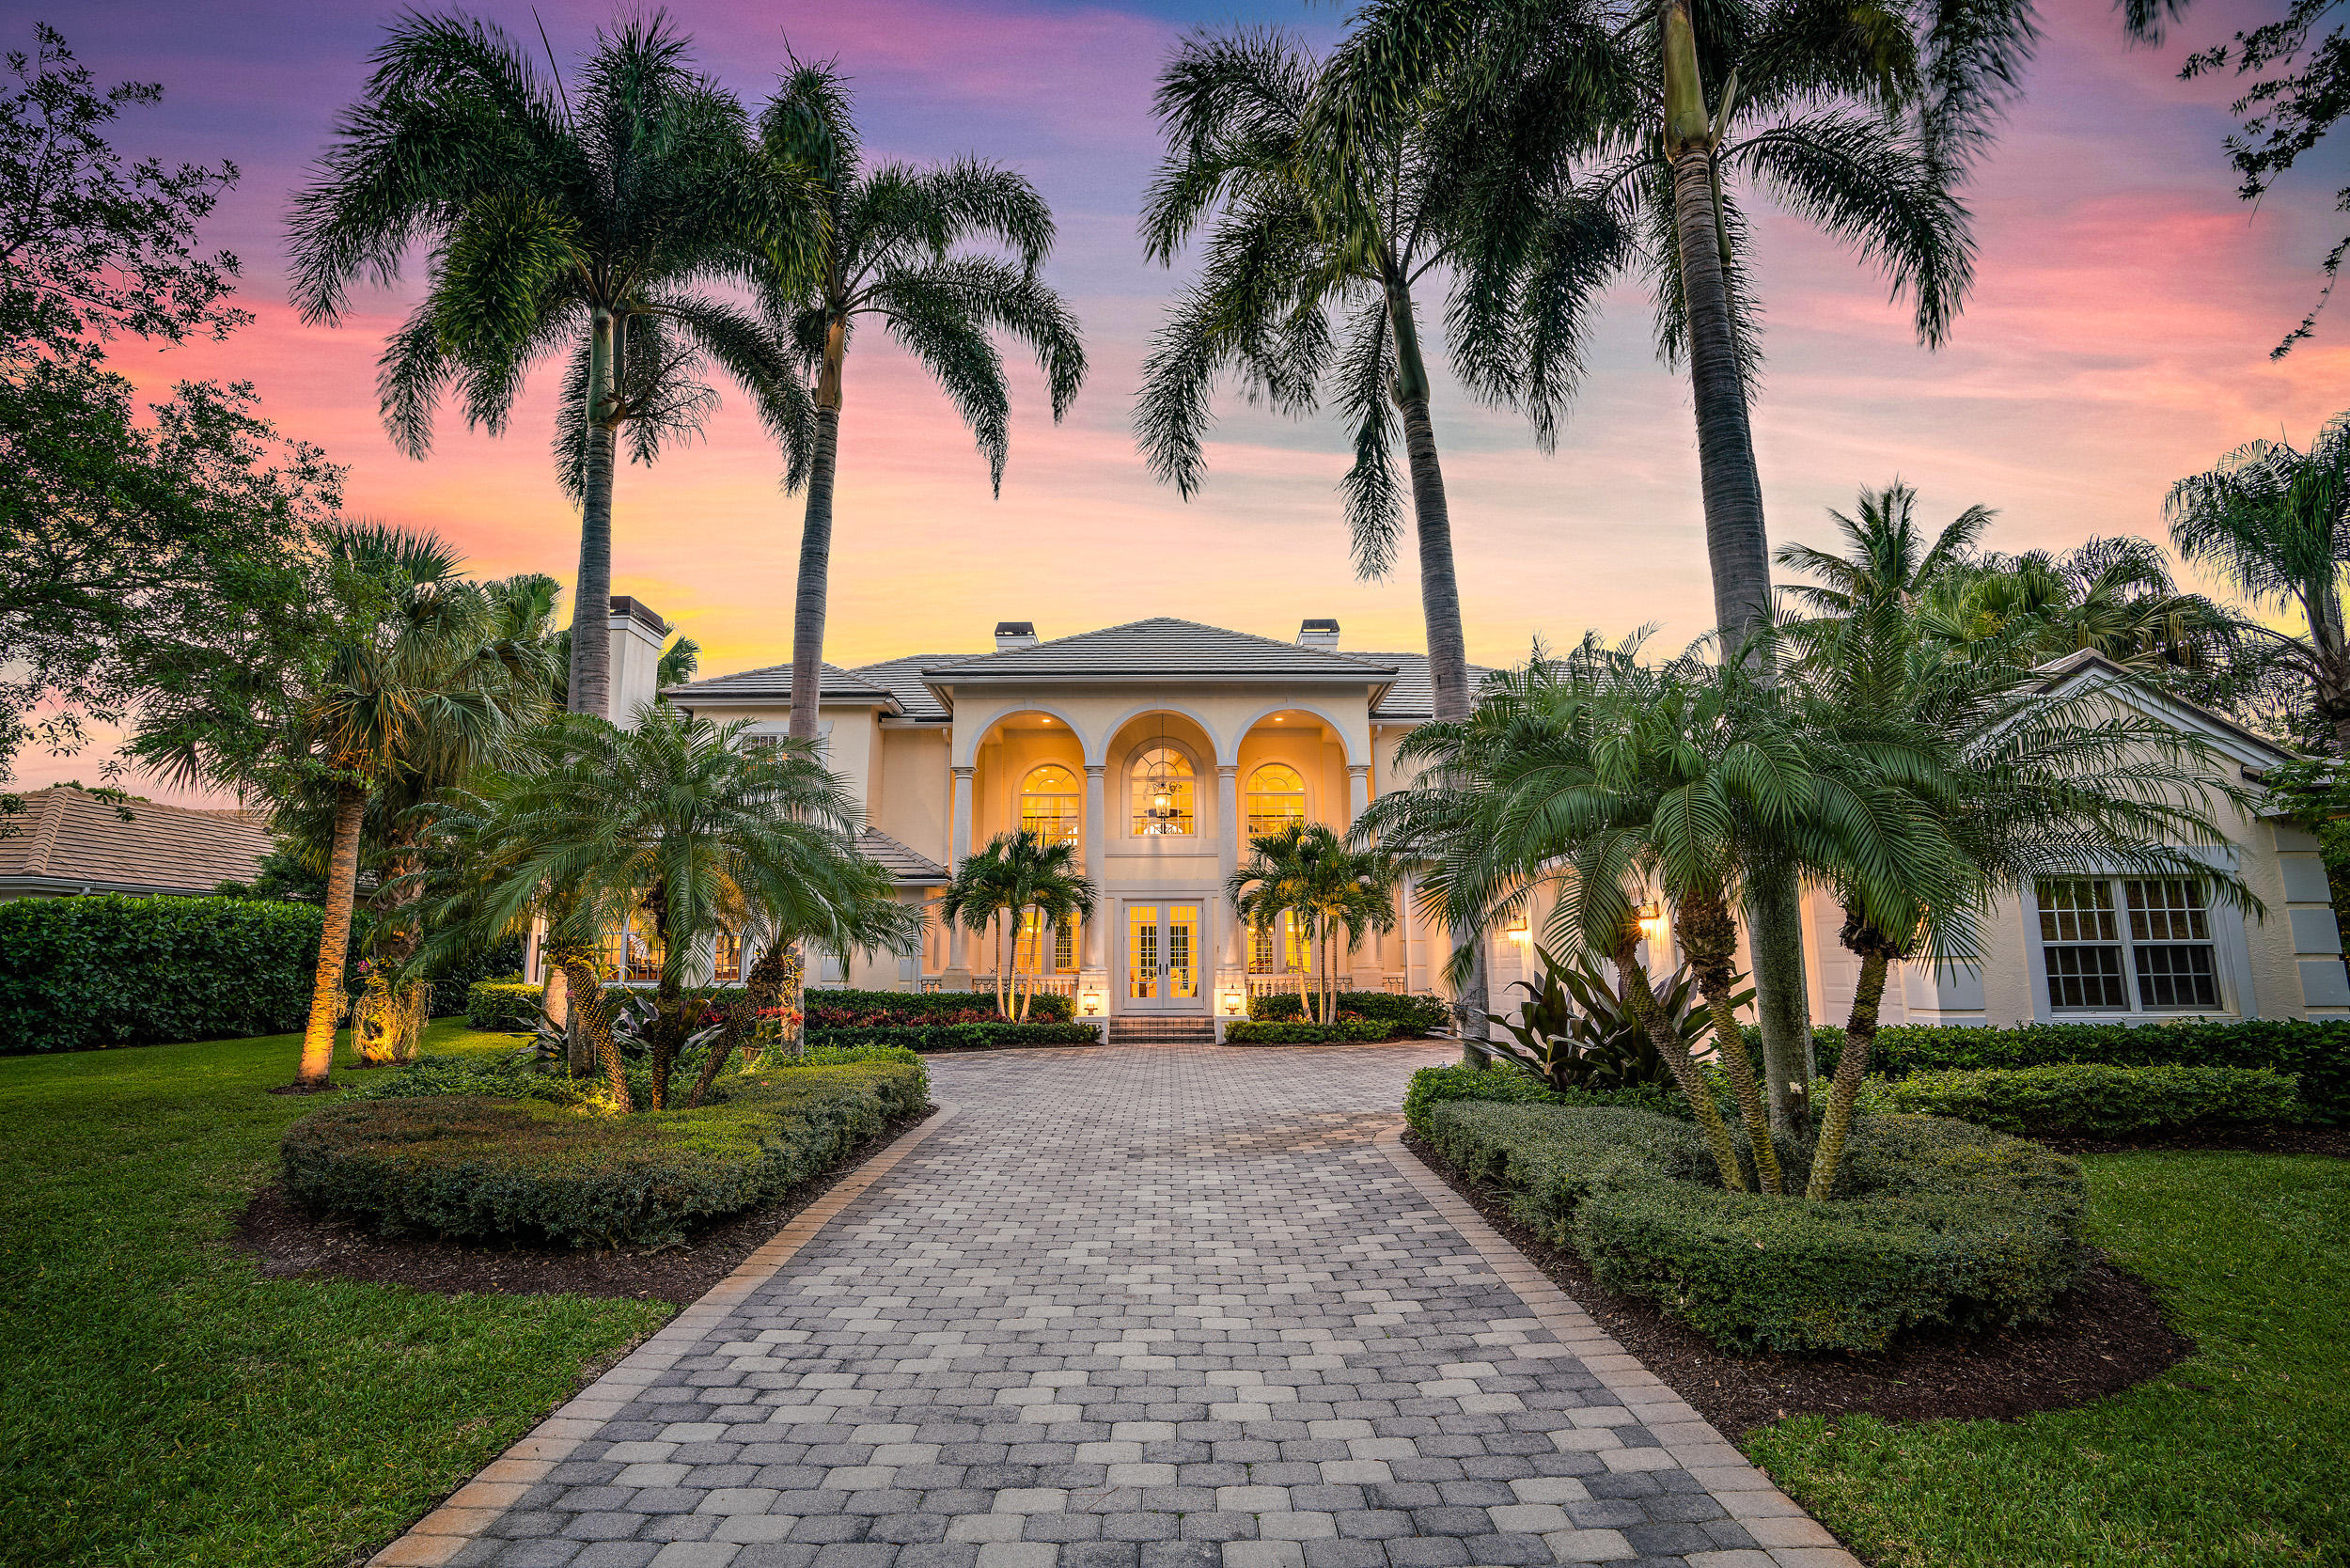 Home for sale in Old Marsh Palm Beach Gardens Florida